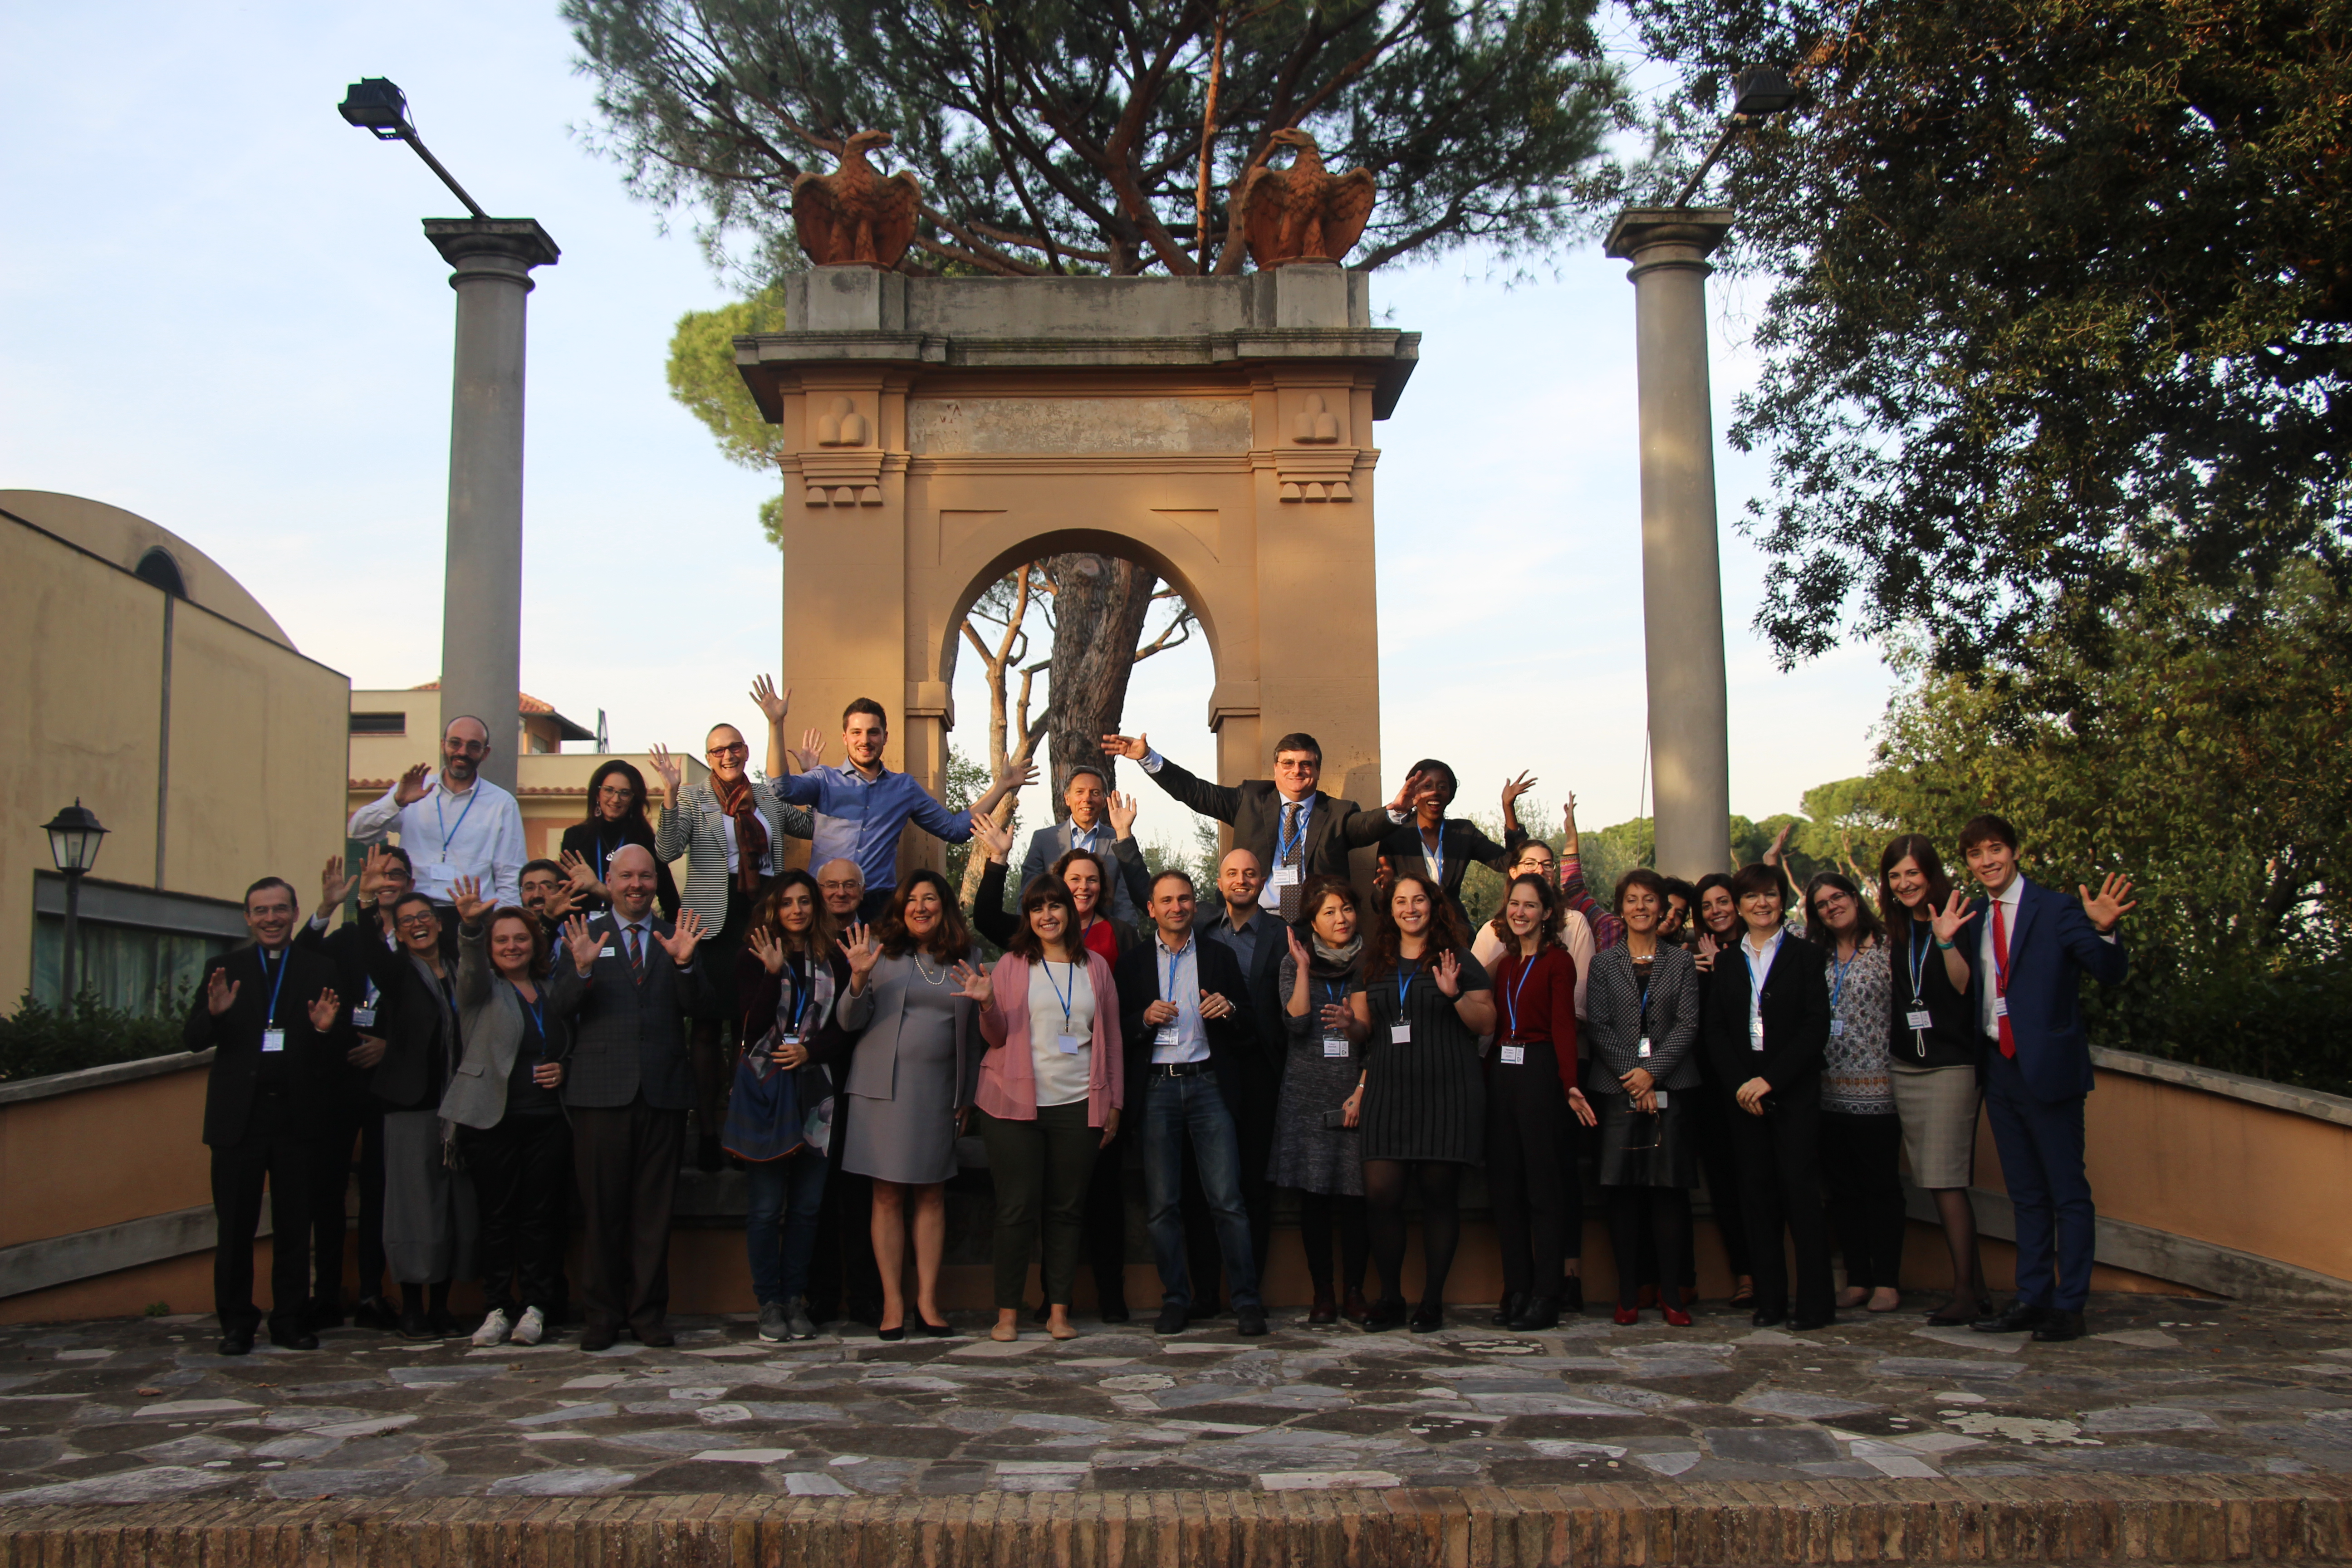 Training event for SAS professionals. Rome, Italy; November 2018